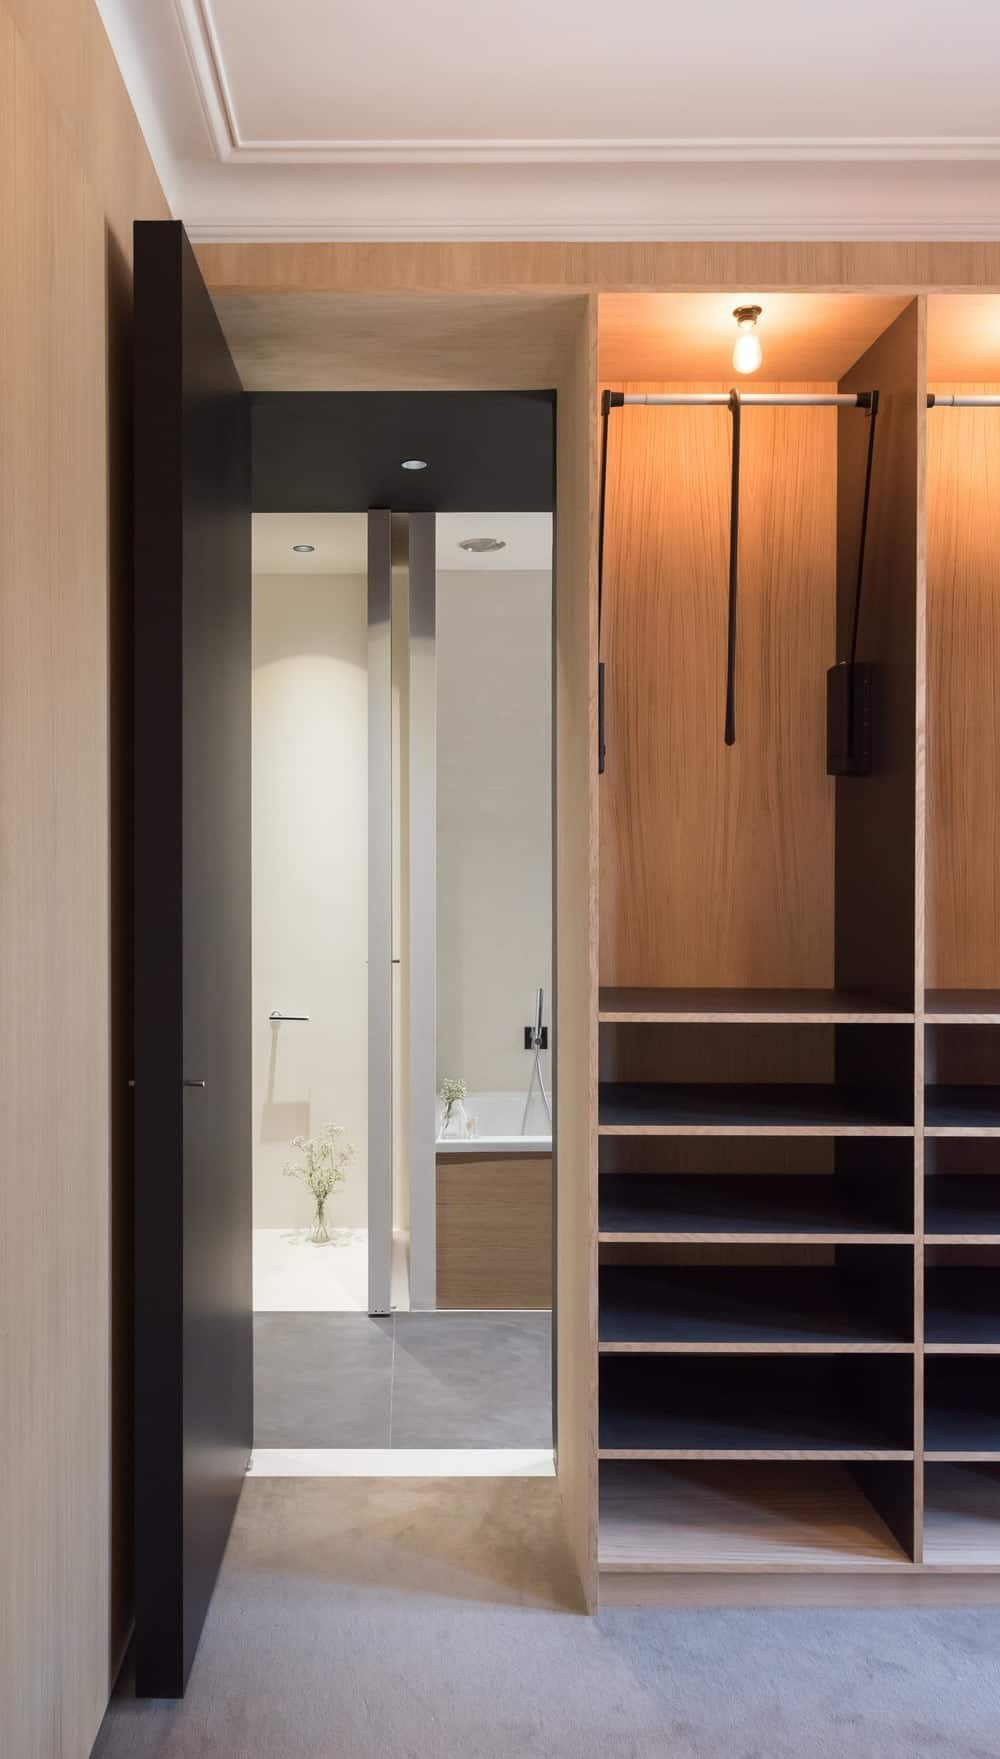 Large closet with large storage cabinet and doorway leading to the bathroom. Photo credit: Mickaël Martins Afonso